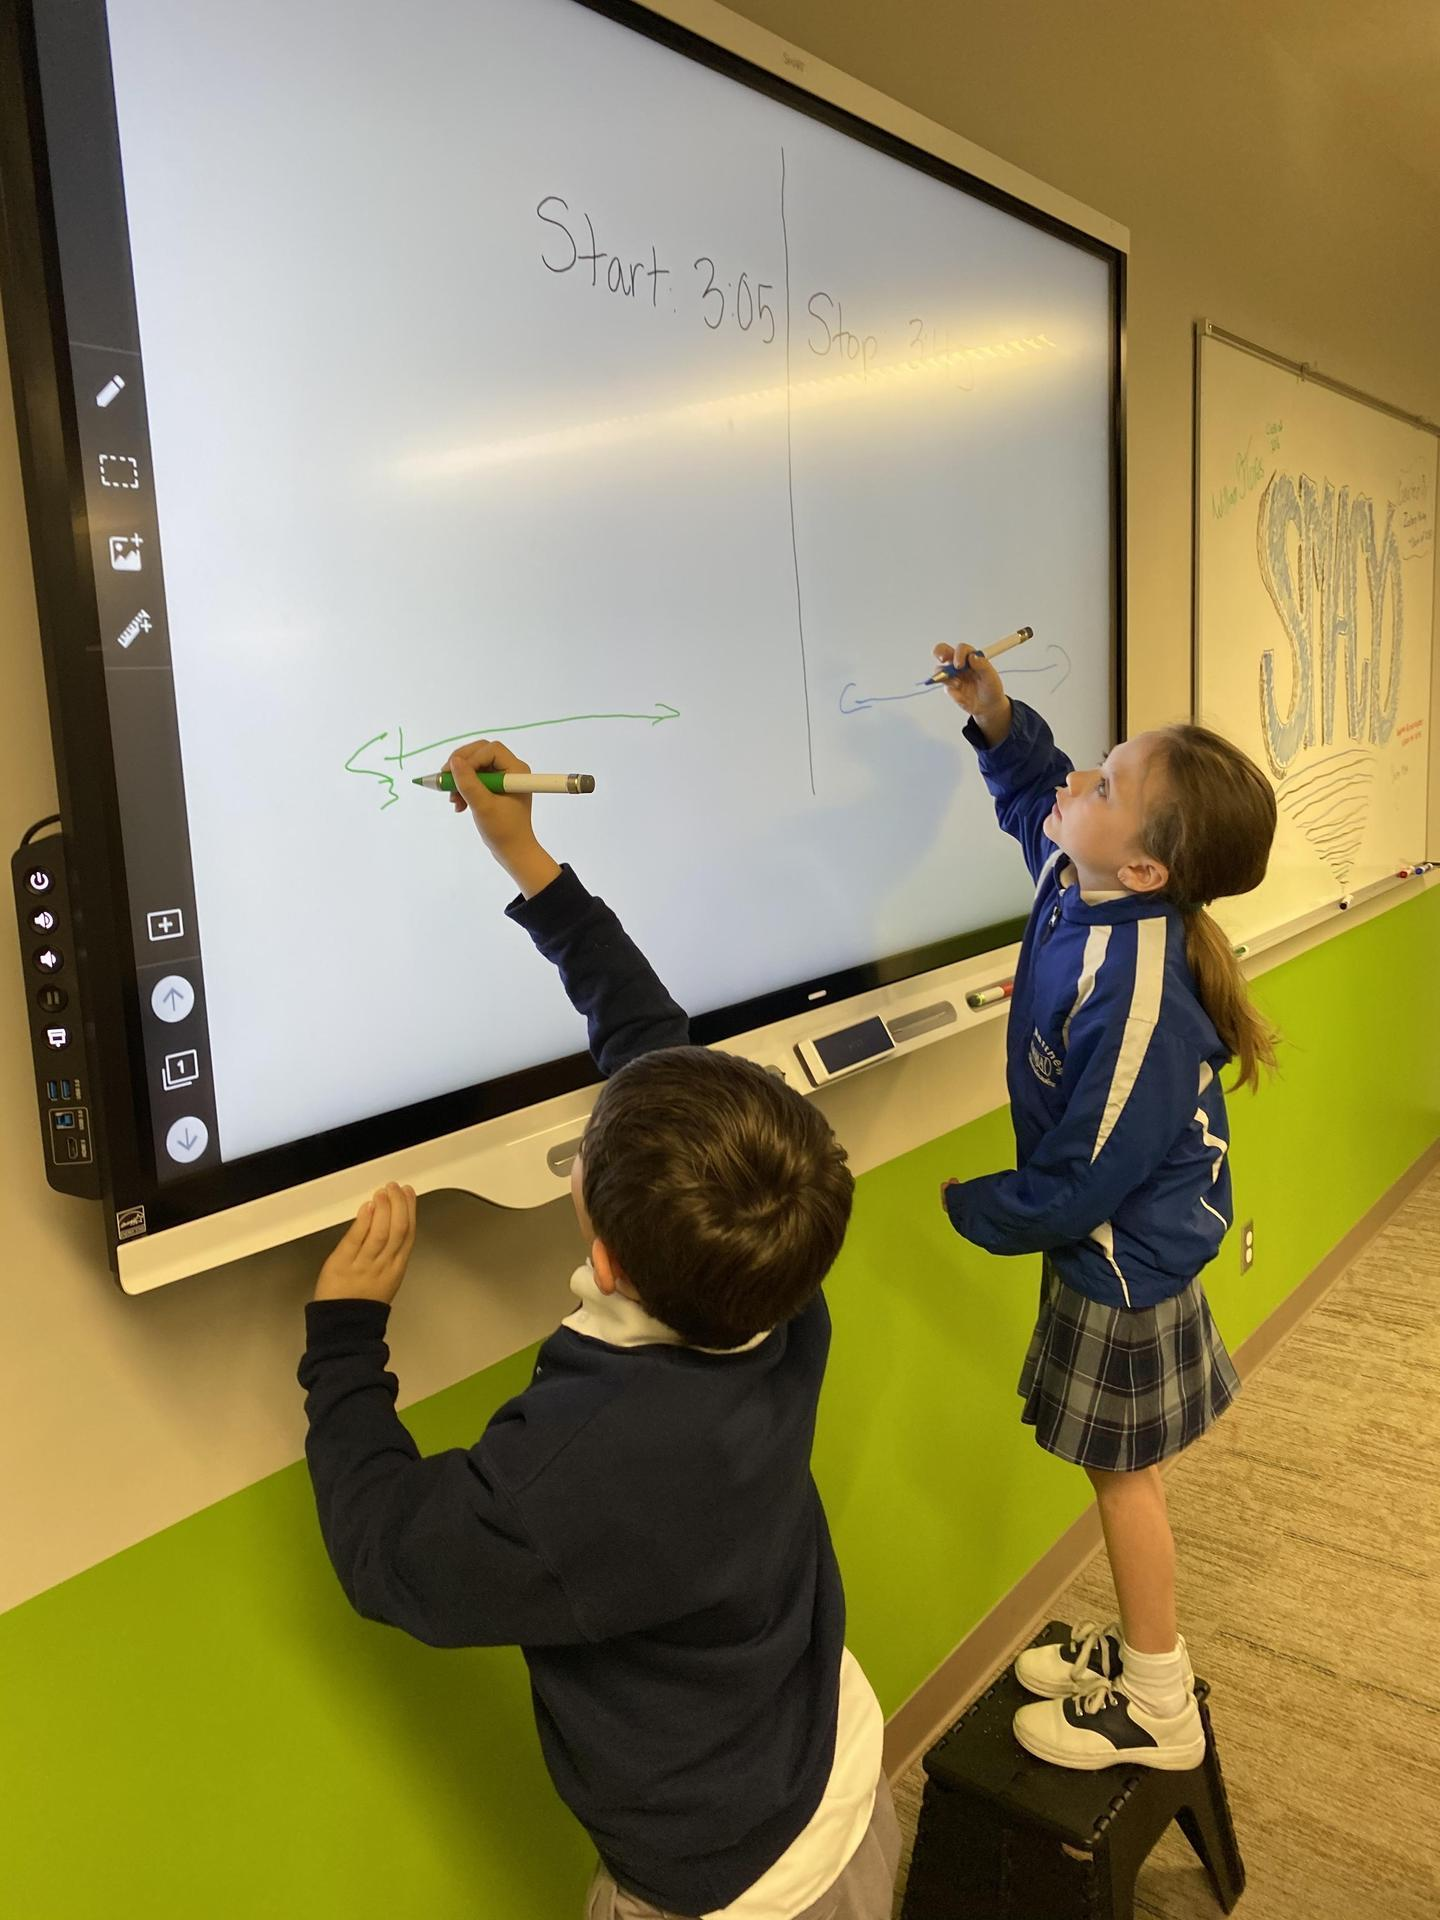 Students using SmartBoard